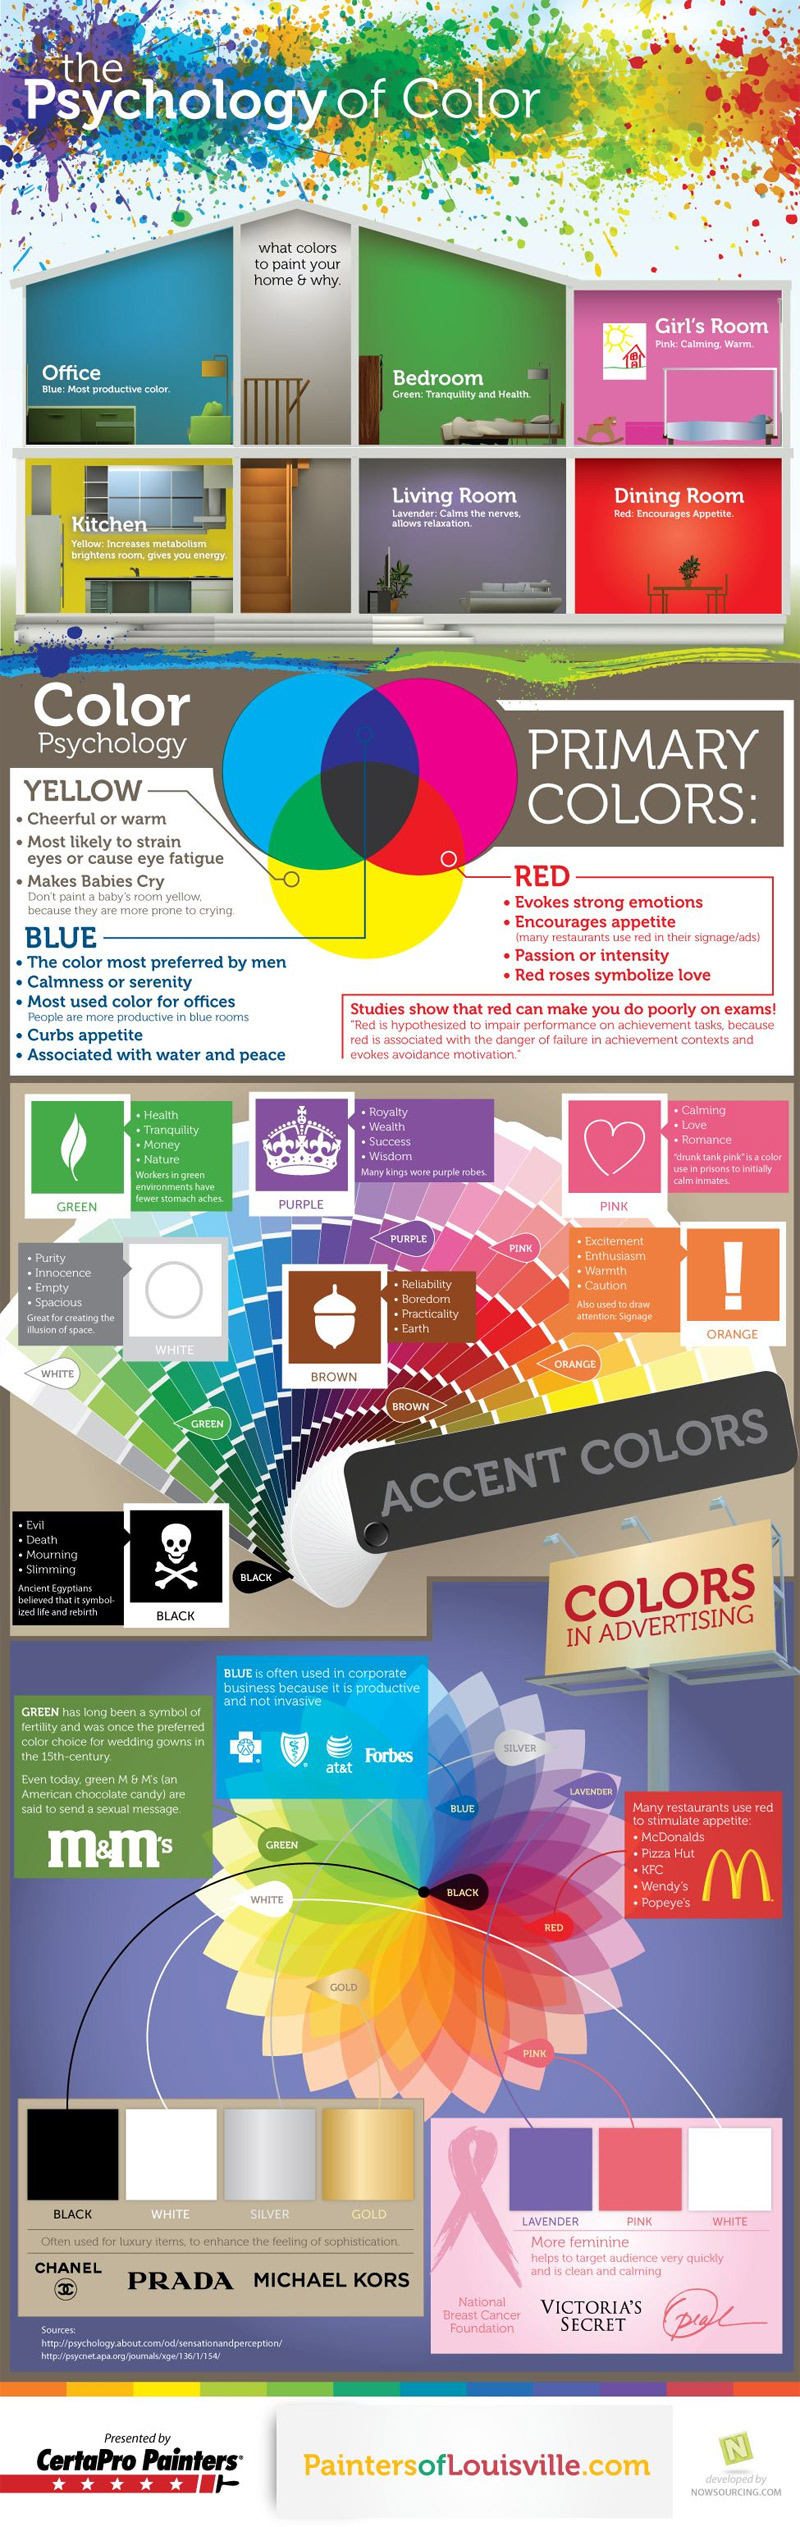 Interior Design Color Chart Cheat Sheet